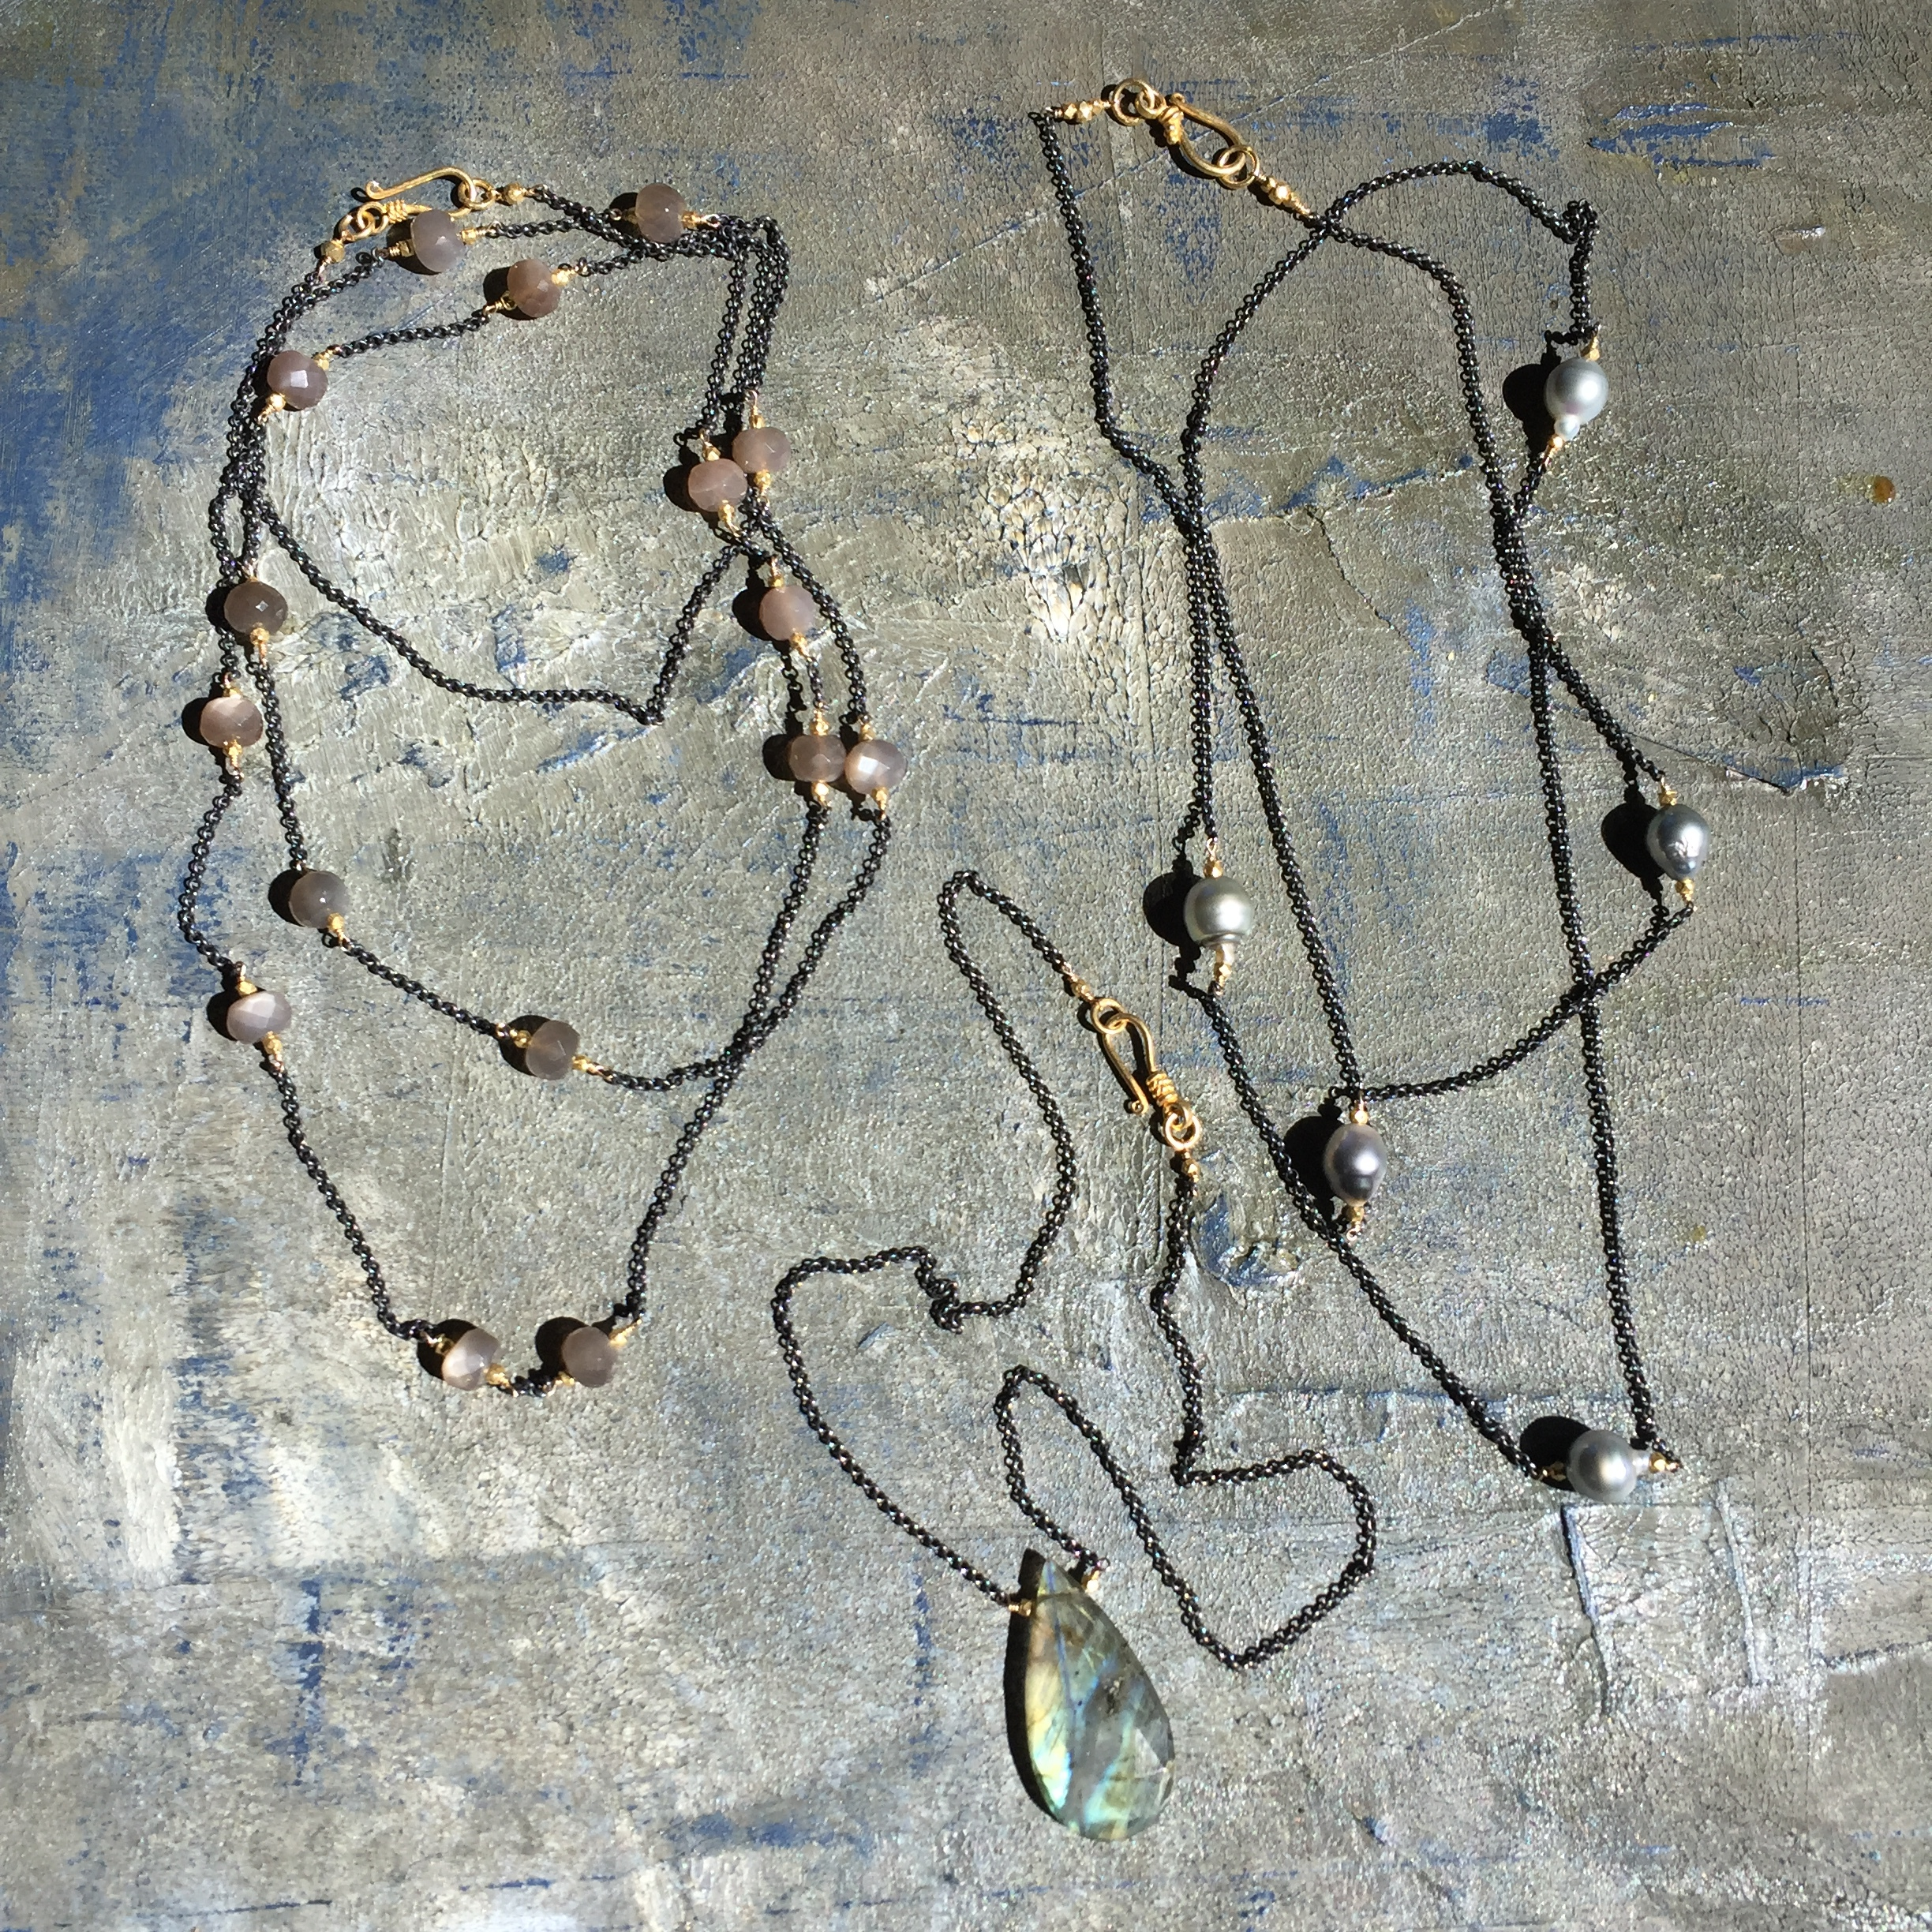 Oxidized silver, Brown moonstones, Labradorite and Tahitian pearls necklaces F/W 2016